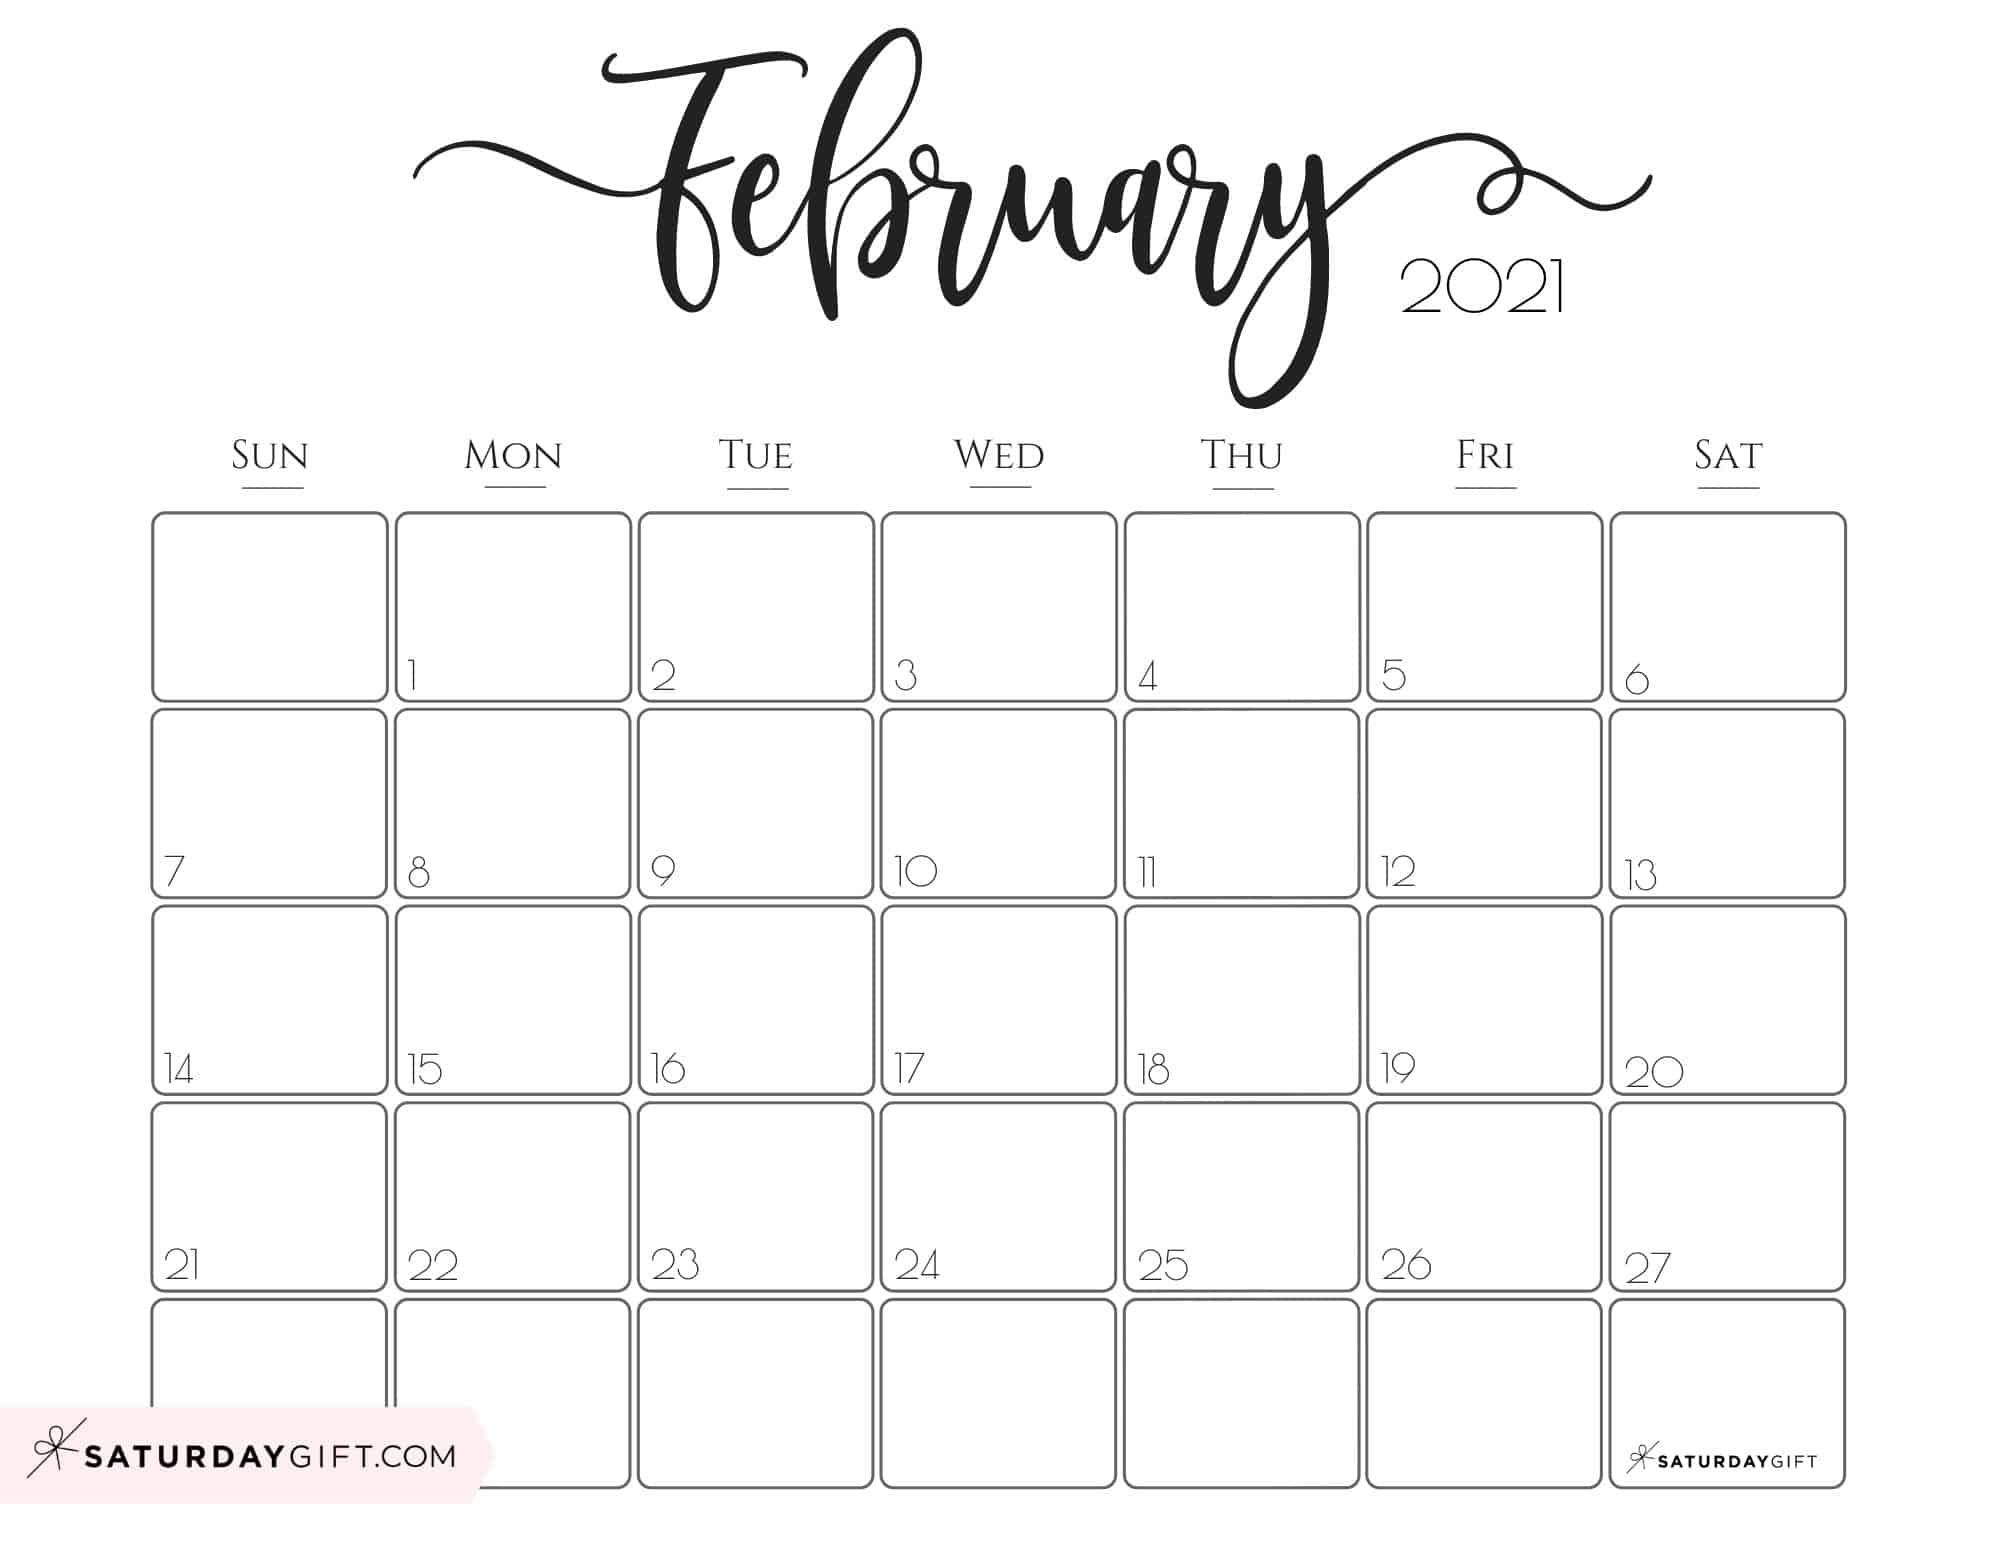 Cute (& Free!) Printable February 2021 Calendar | SaturdayGift in